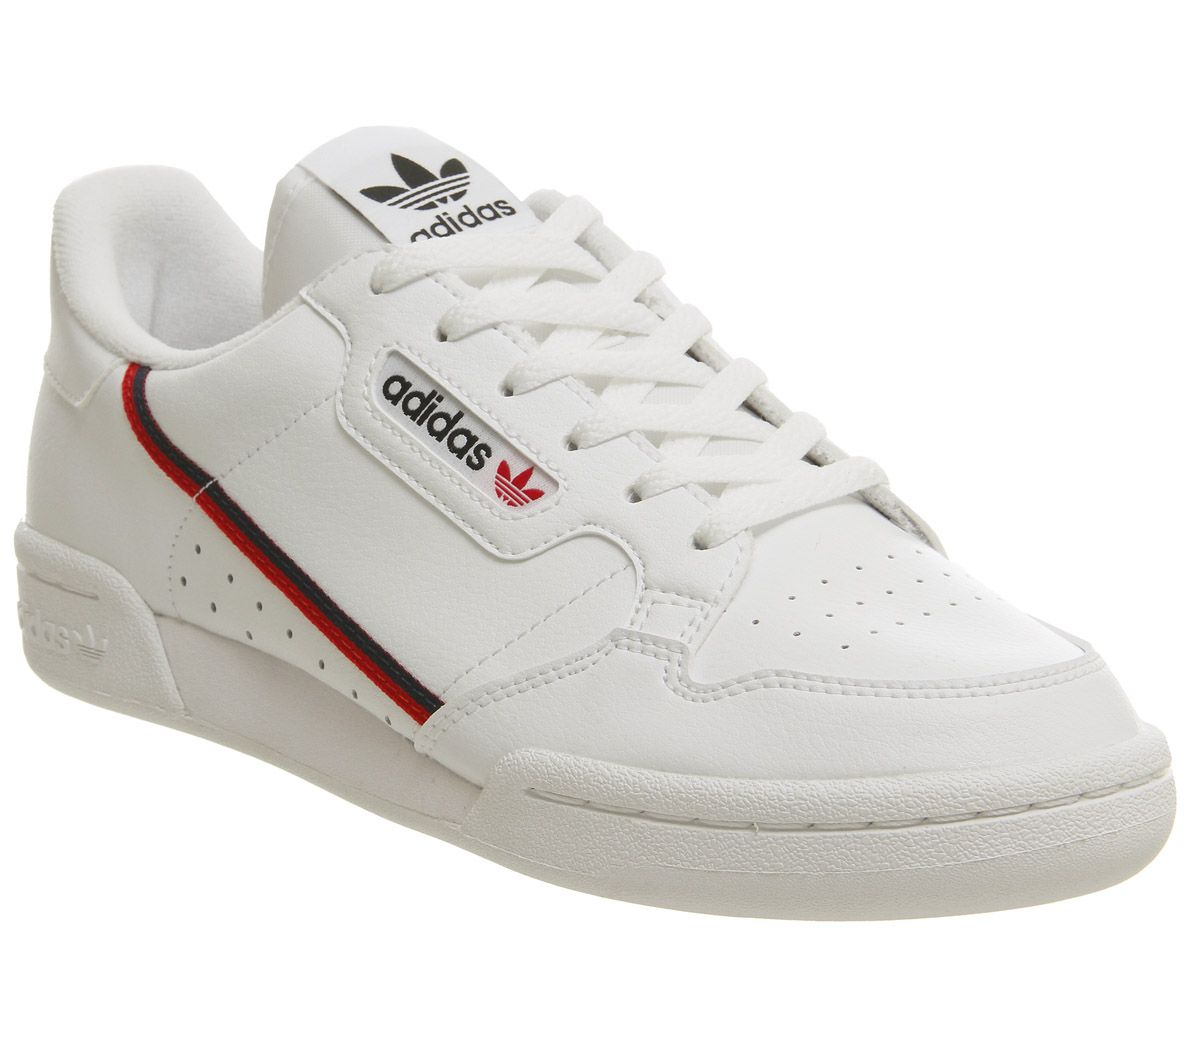 548b2134 adidas Continental 80s Junior Trainers White Scarlet Collegiate Navy ...